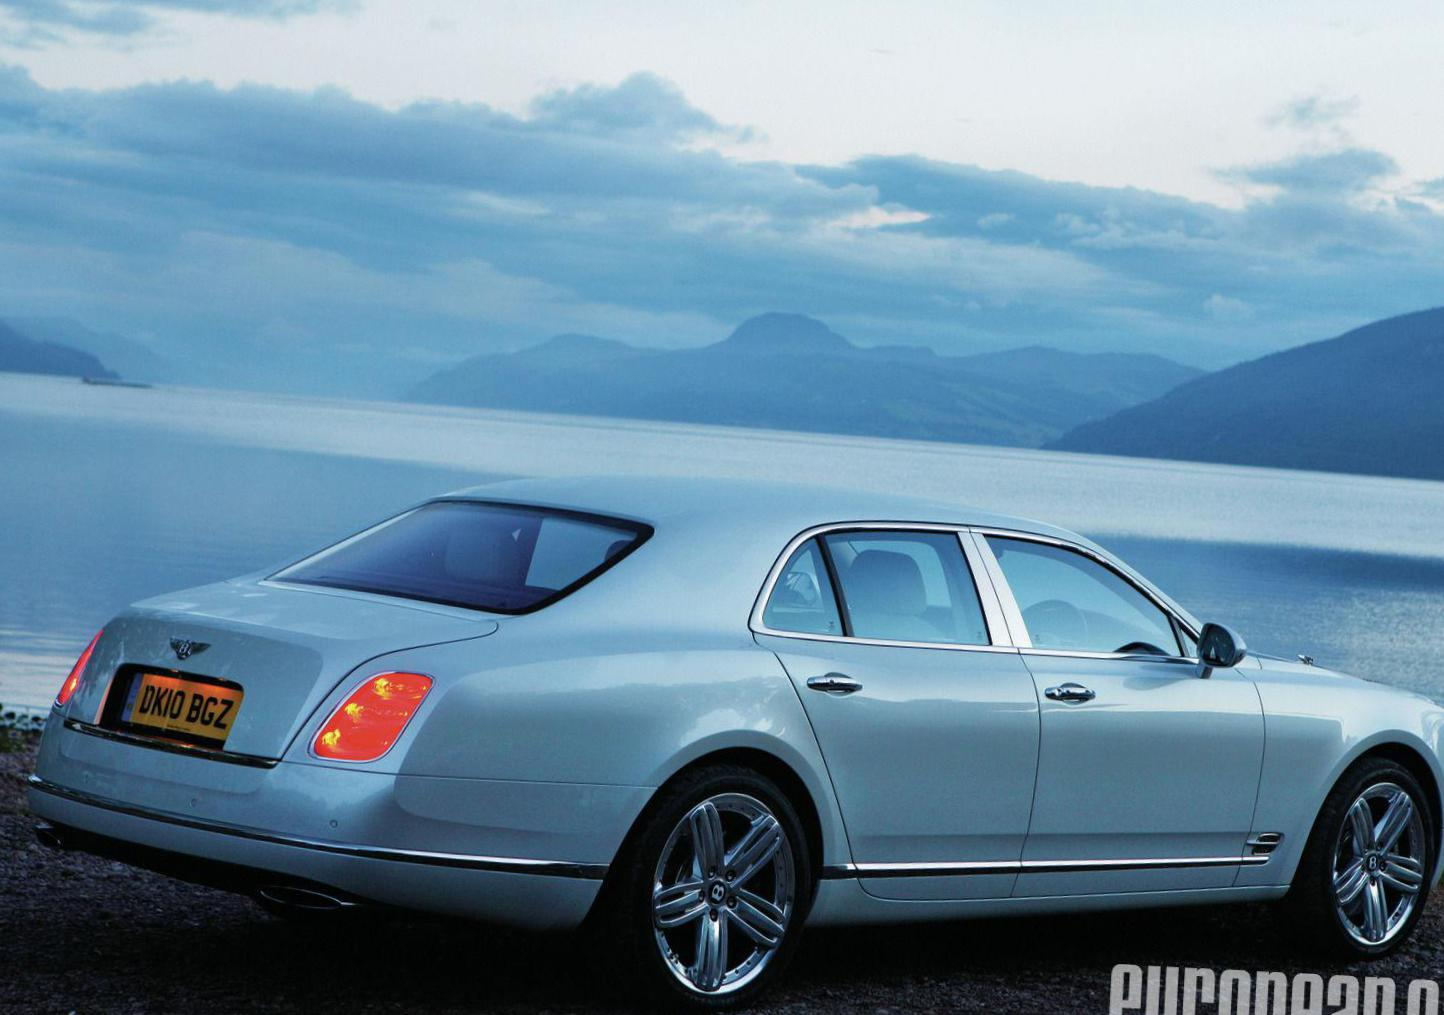 Mulsanne Bentley parts hatchback